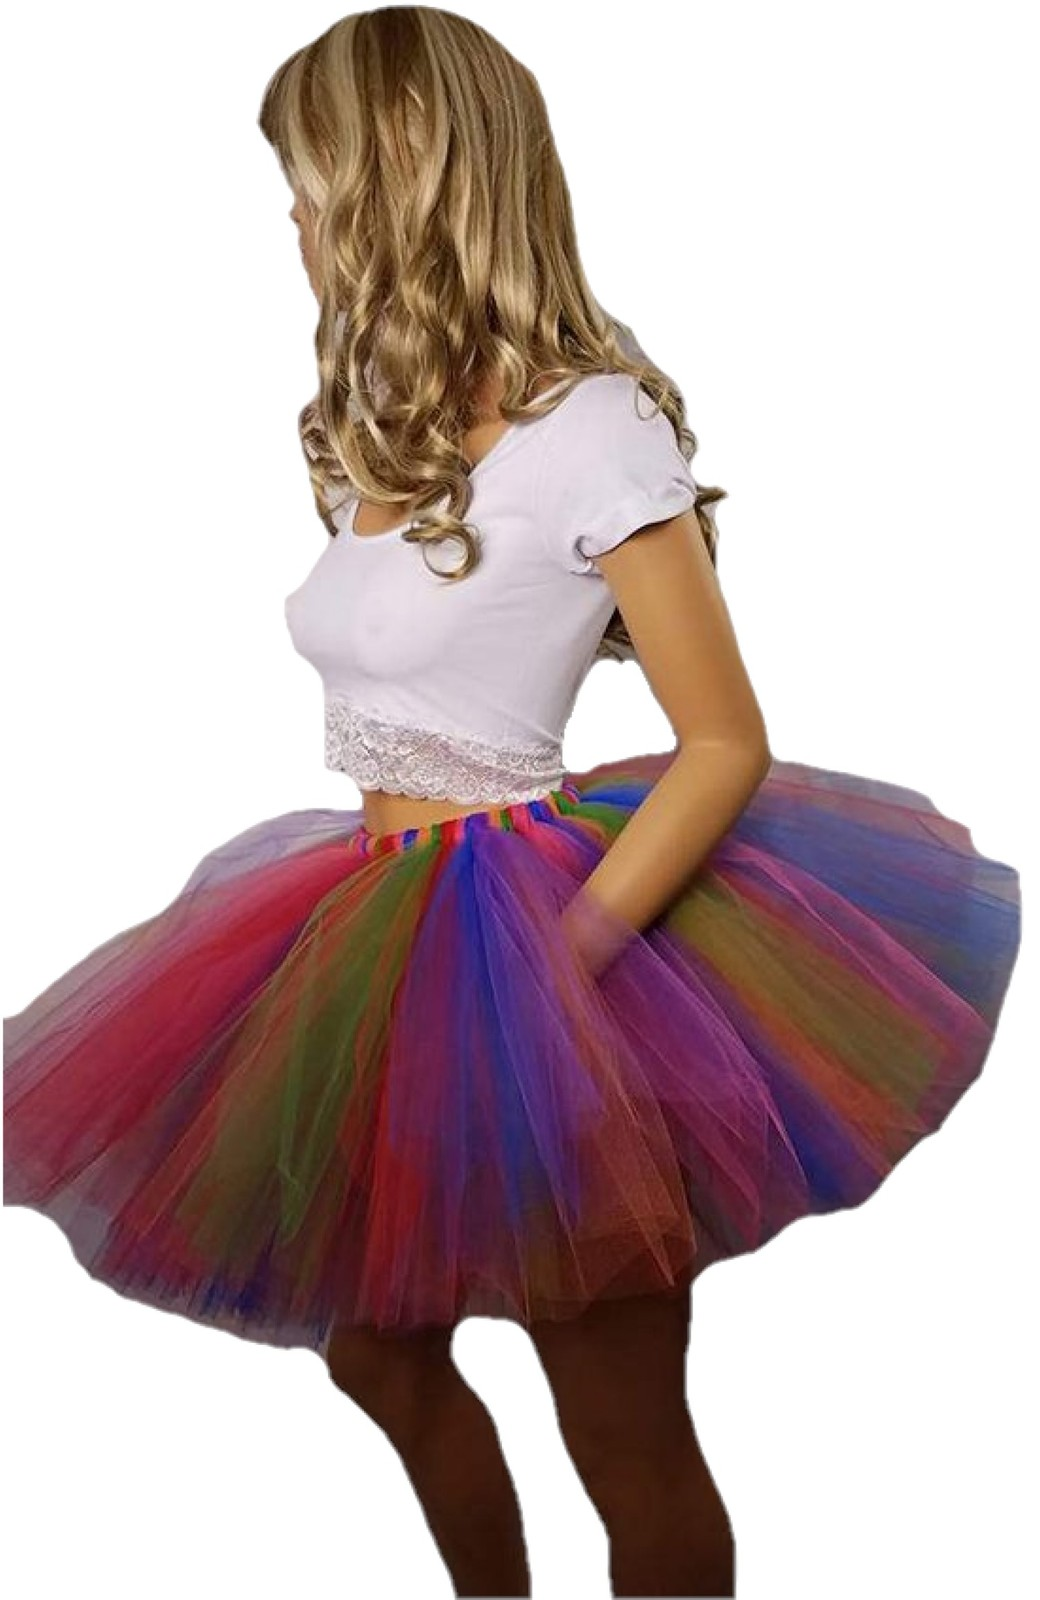 Festive Rainbow Tutu: Available in Child and Adult Sizes